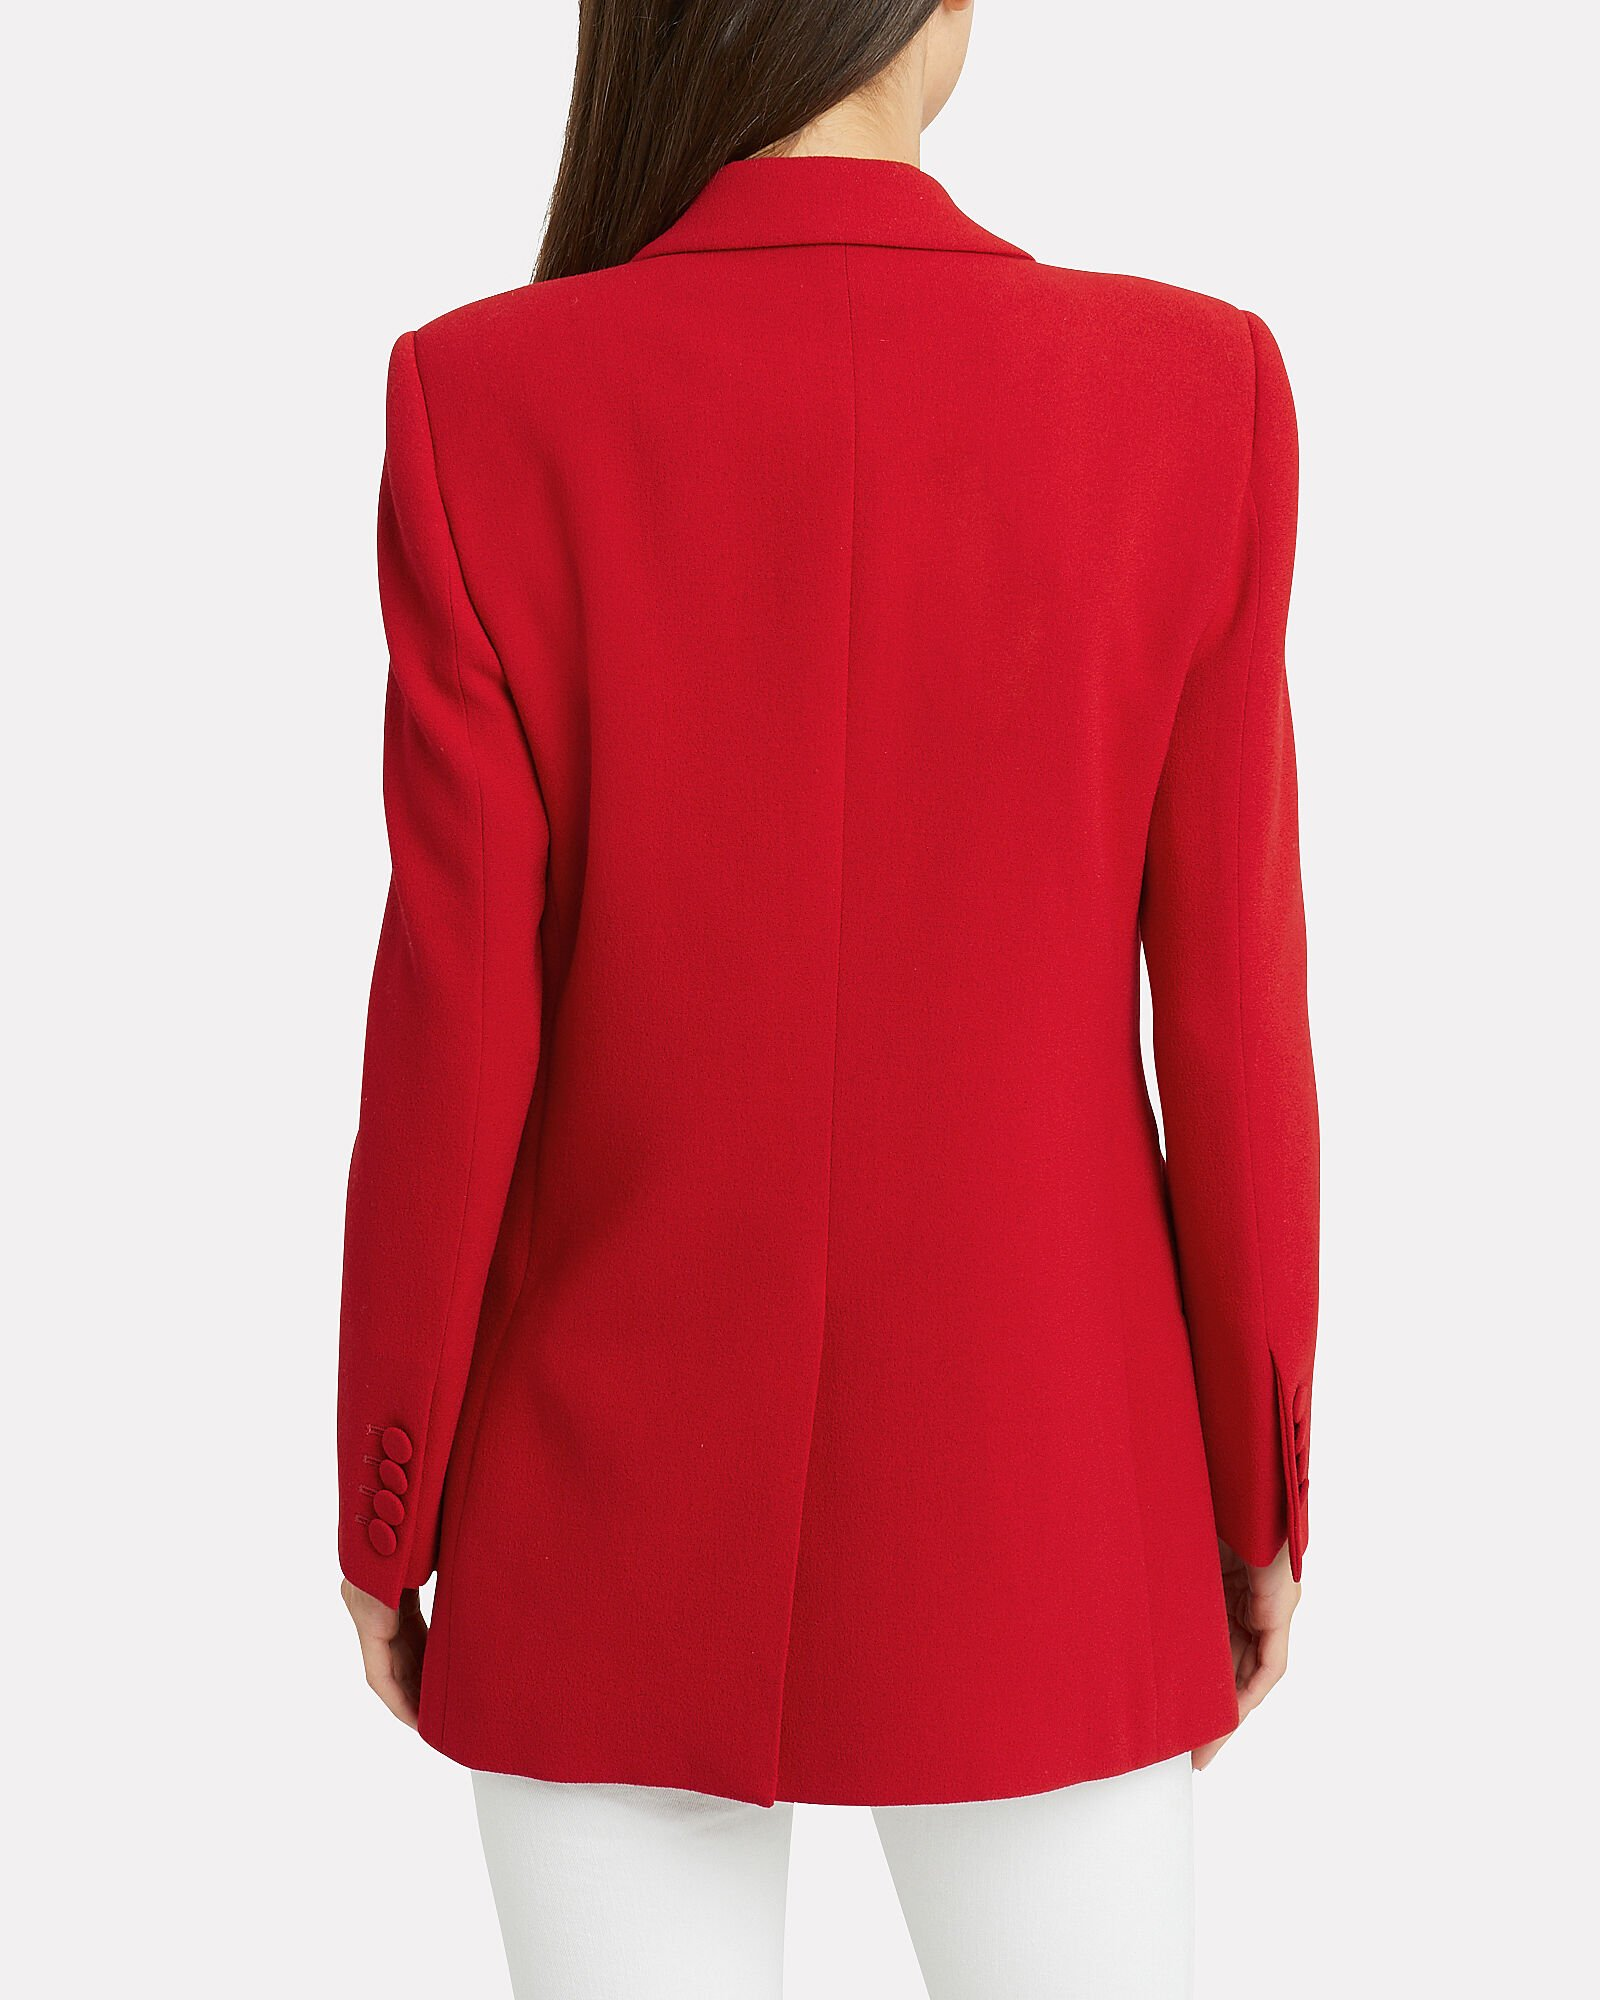 Cool And Easy Red Blazer, RED, hi-res